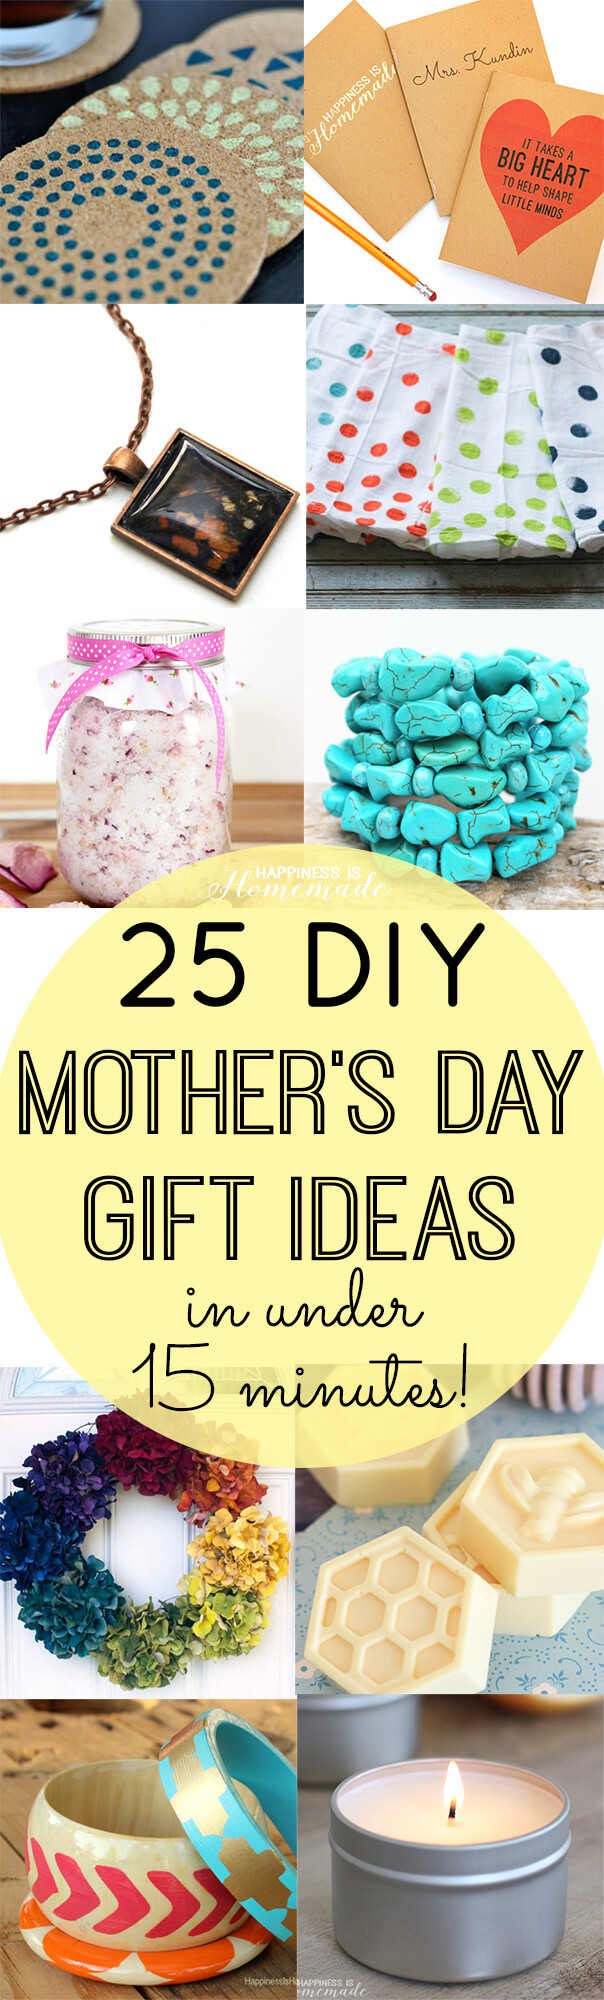 25 DIY Mother's Day Gift Ideas in Under 15 Minutes